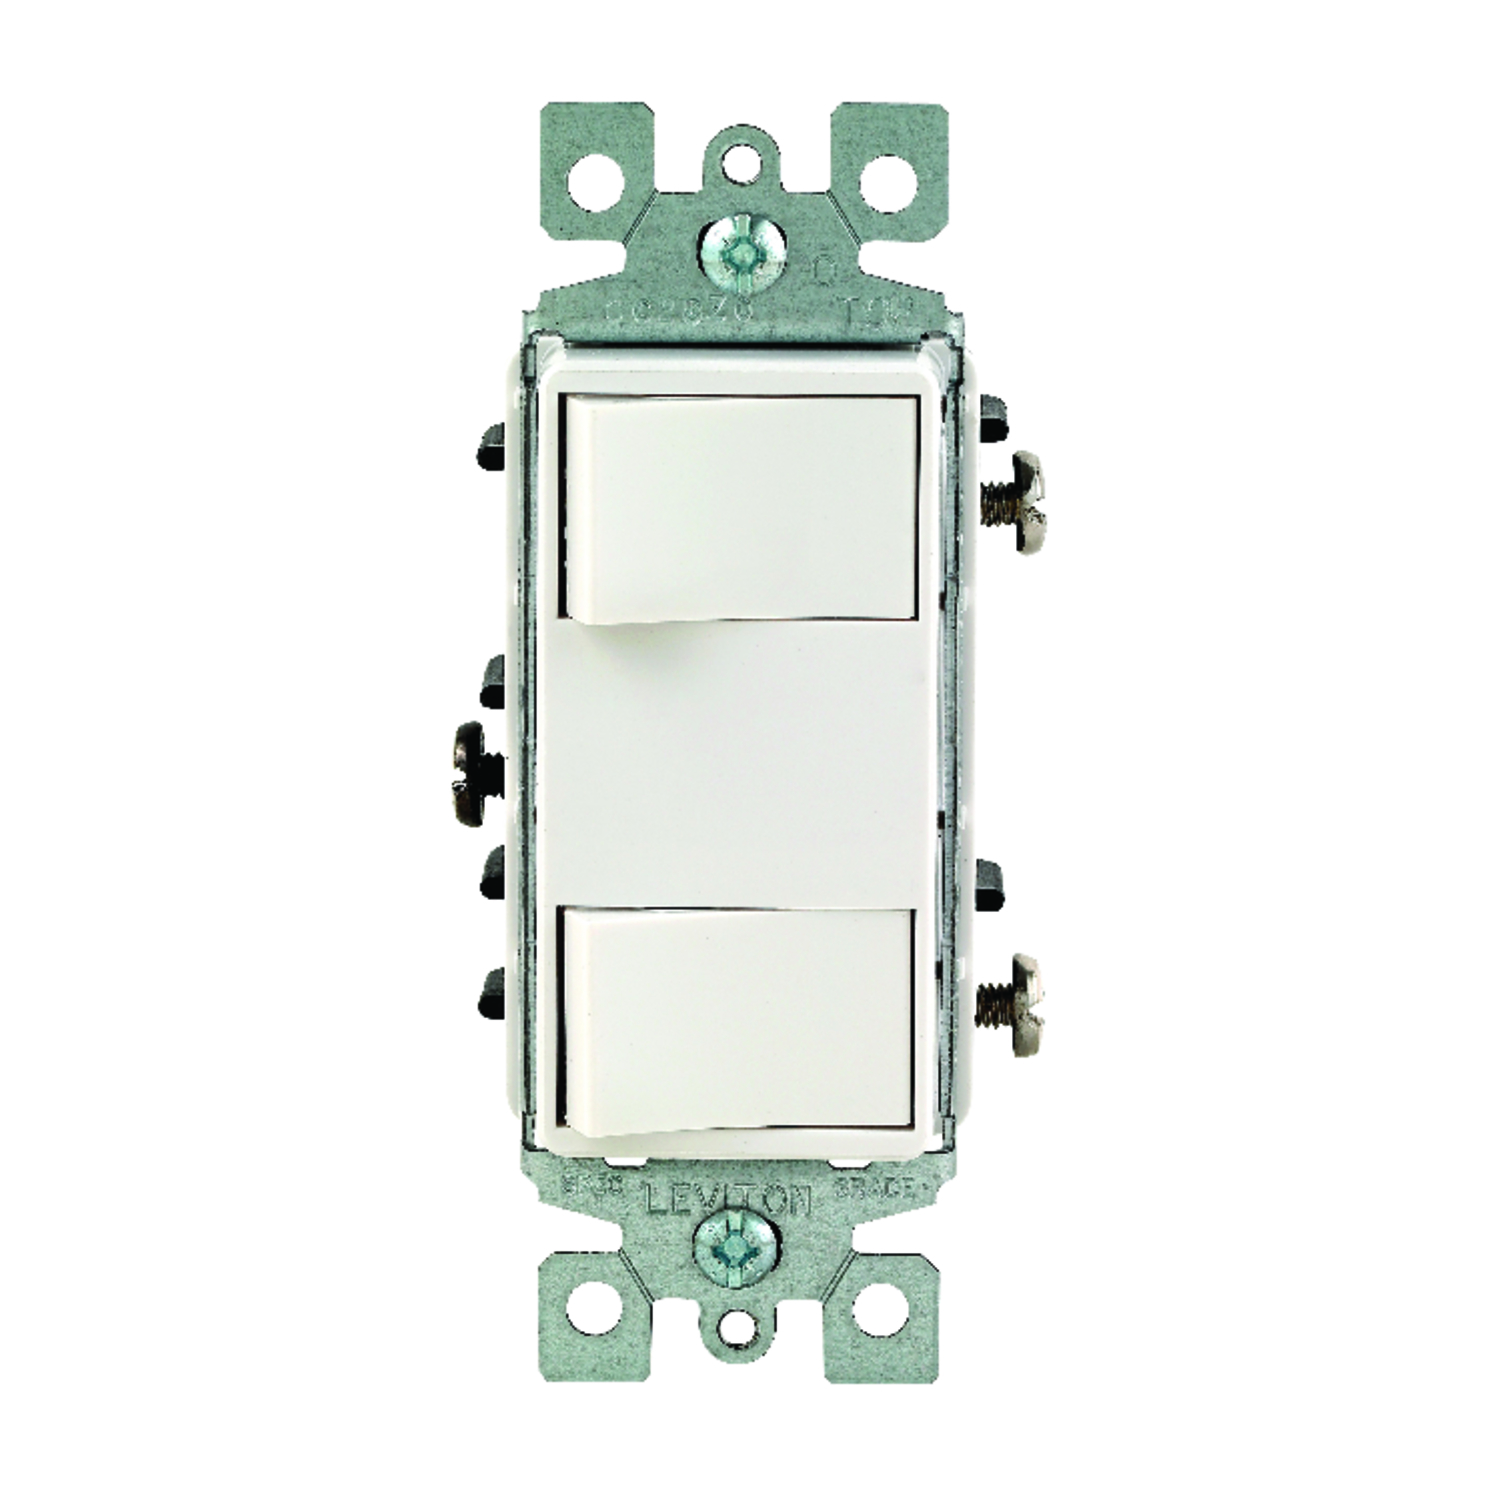 Leviton  15 amps Rocker  Decora  White  1 pk Switch